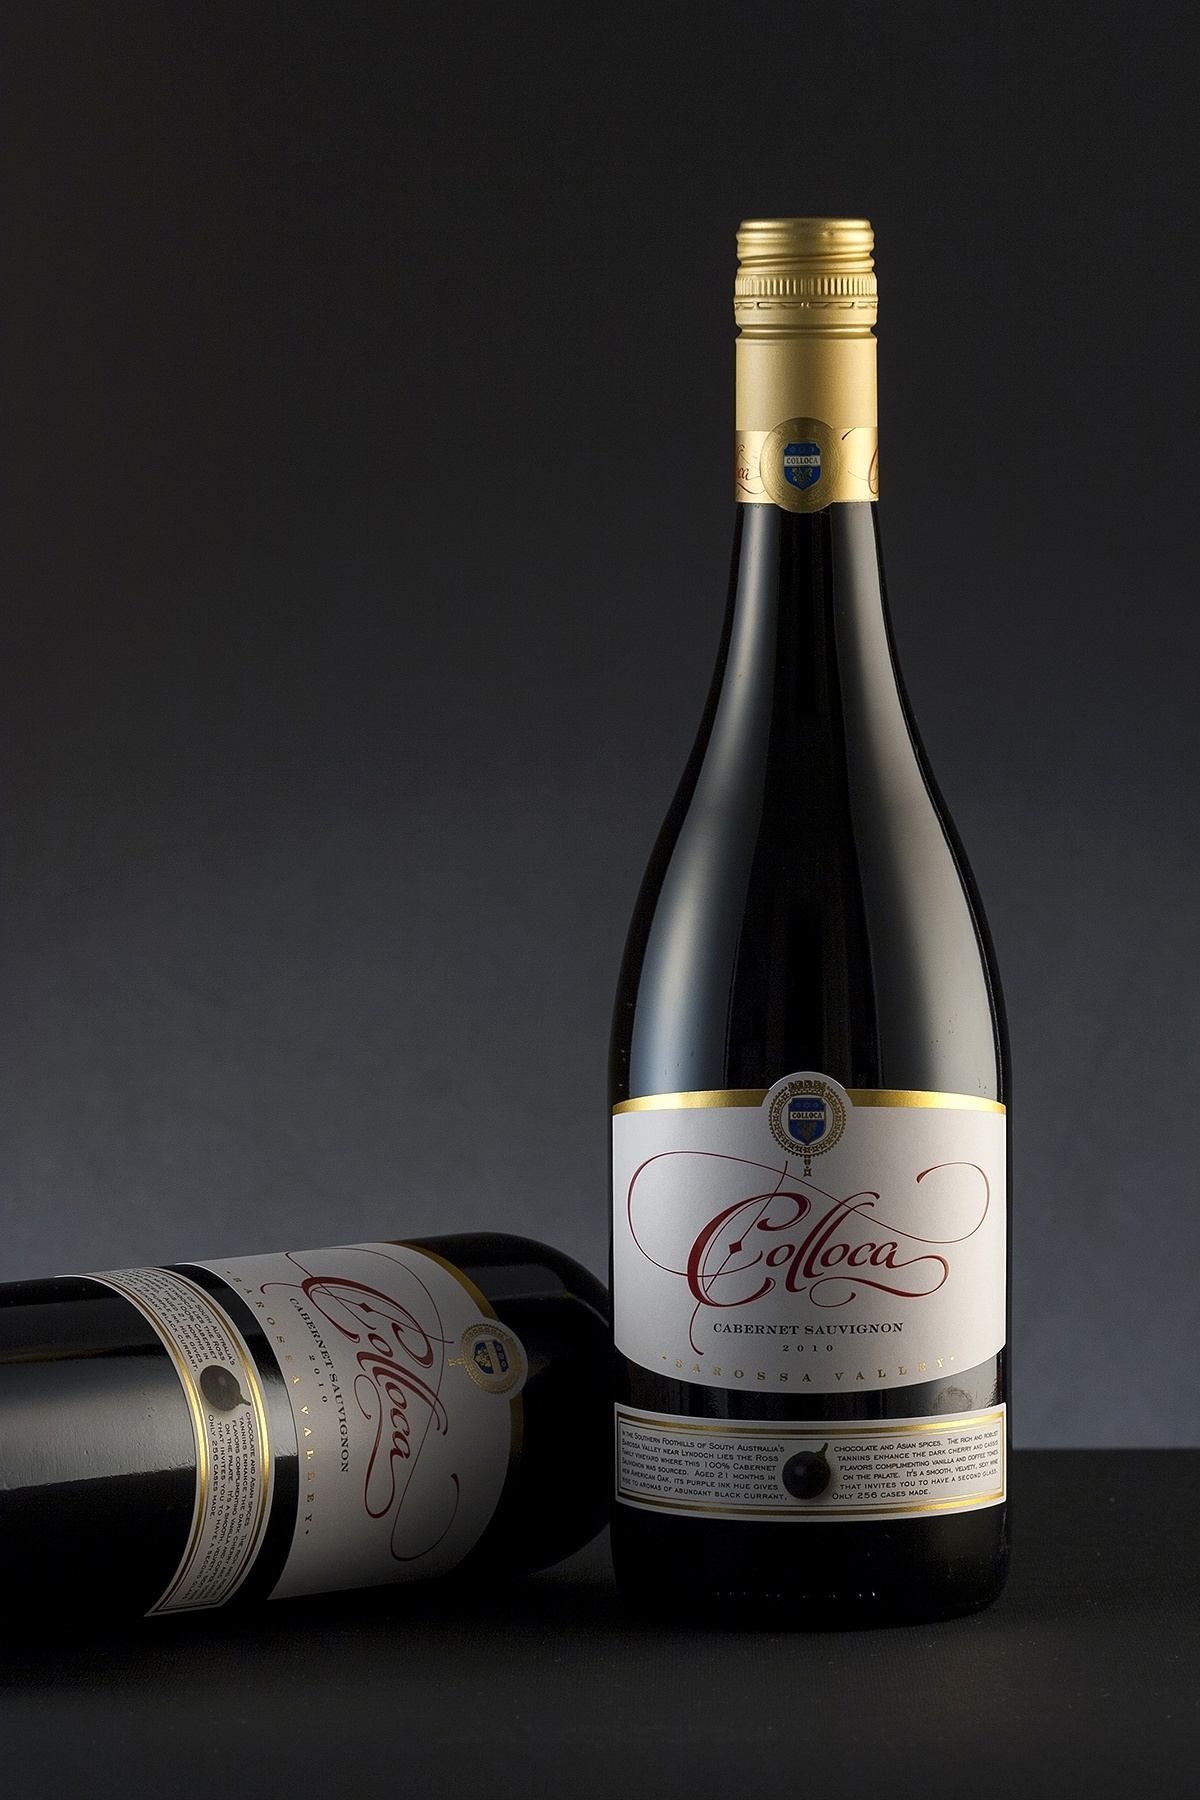 Colloca Estate wine label